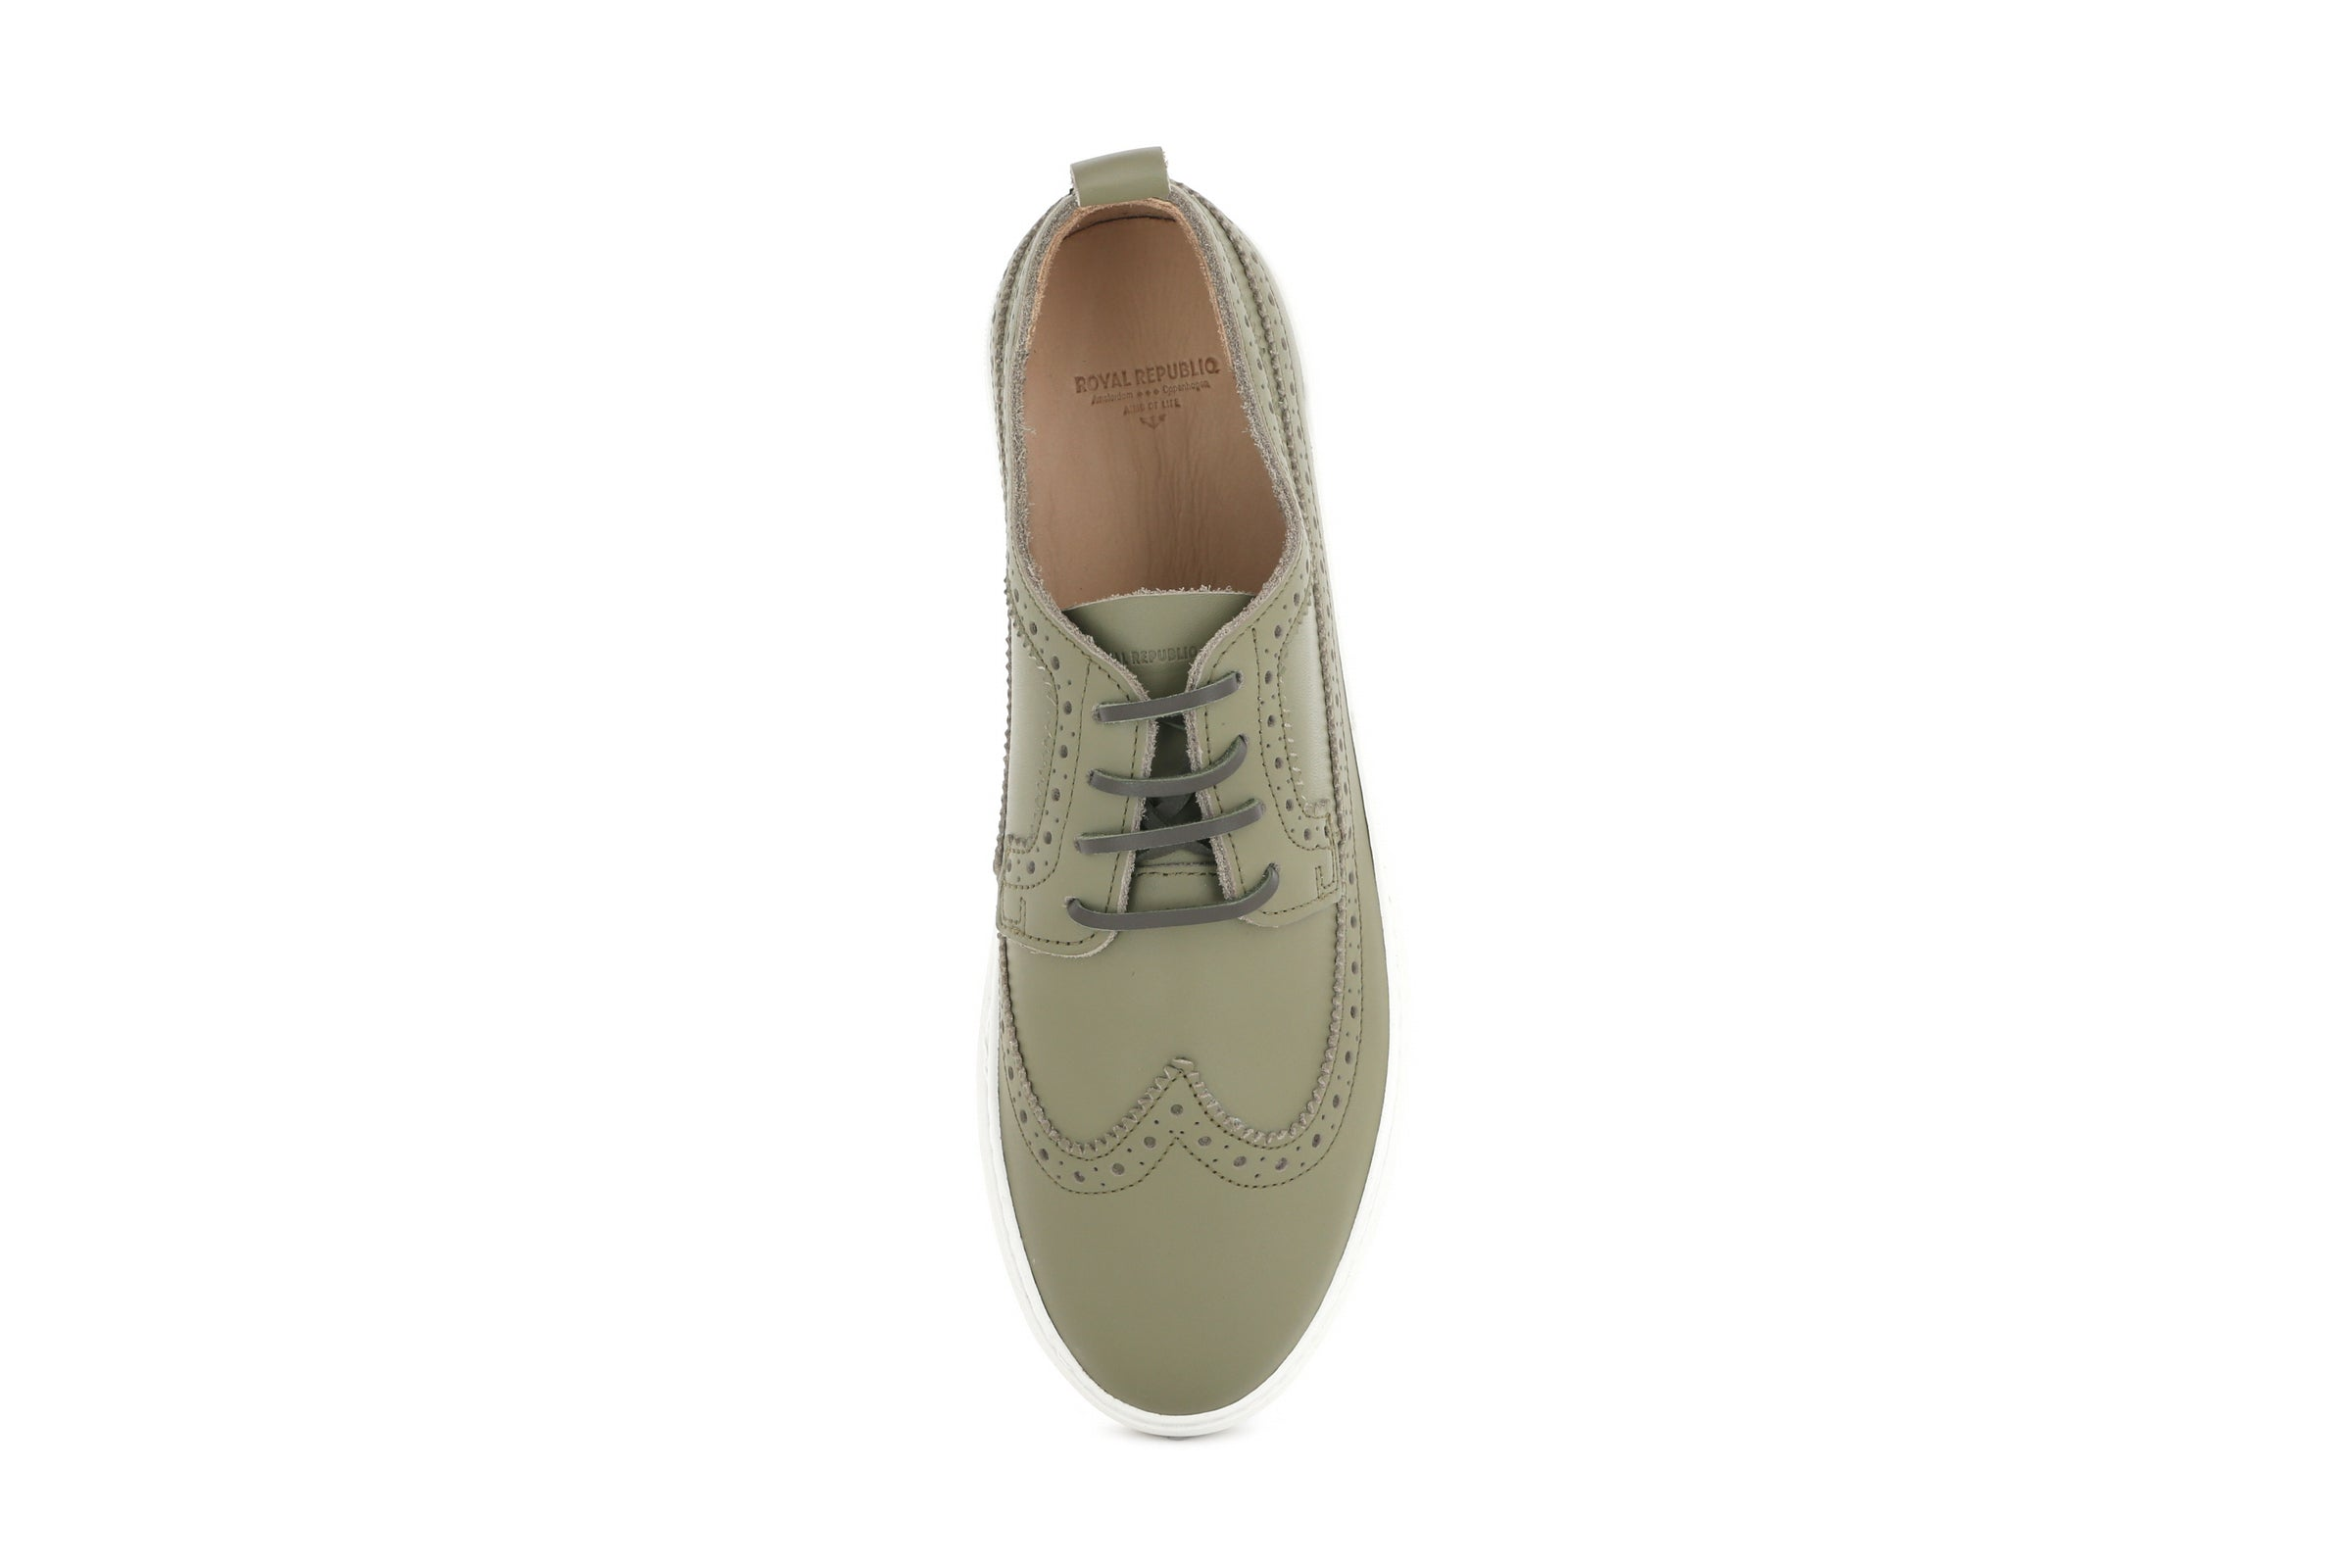 Doric Brogue Derby Shoe